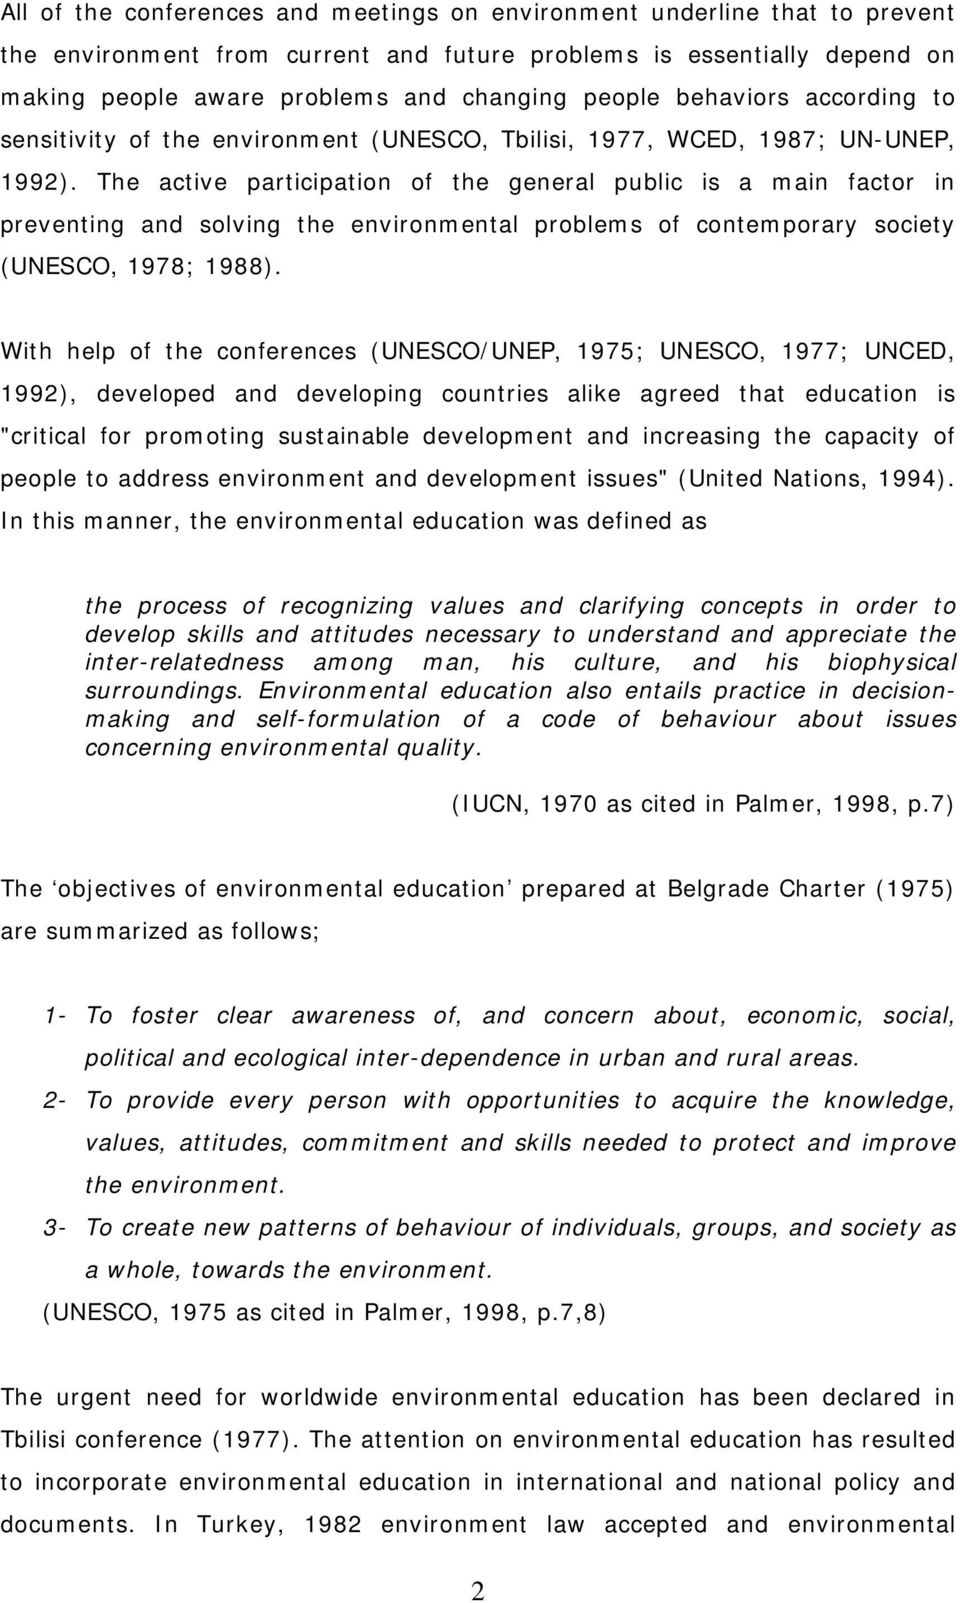 The active participation of the general public is a main factor in preventing and solving the environmental problems of contemporary society (UNESCO, 1978; 1988).